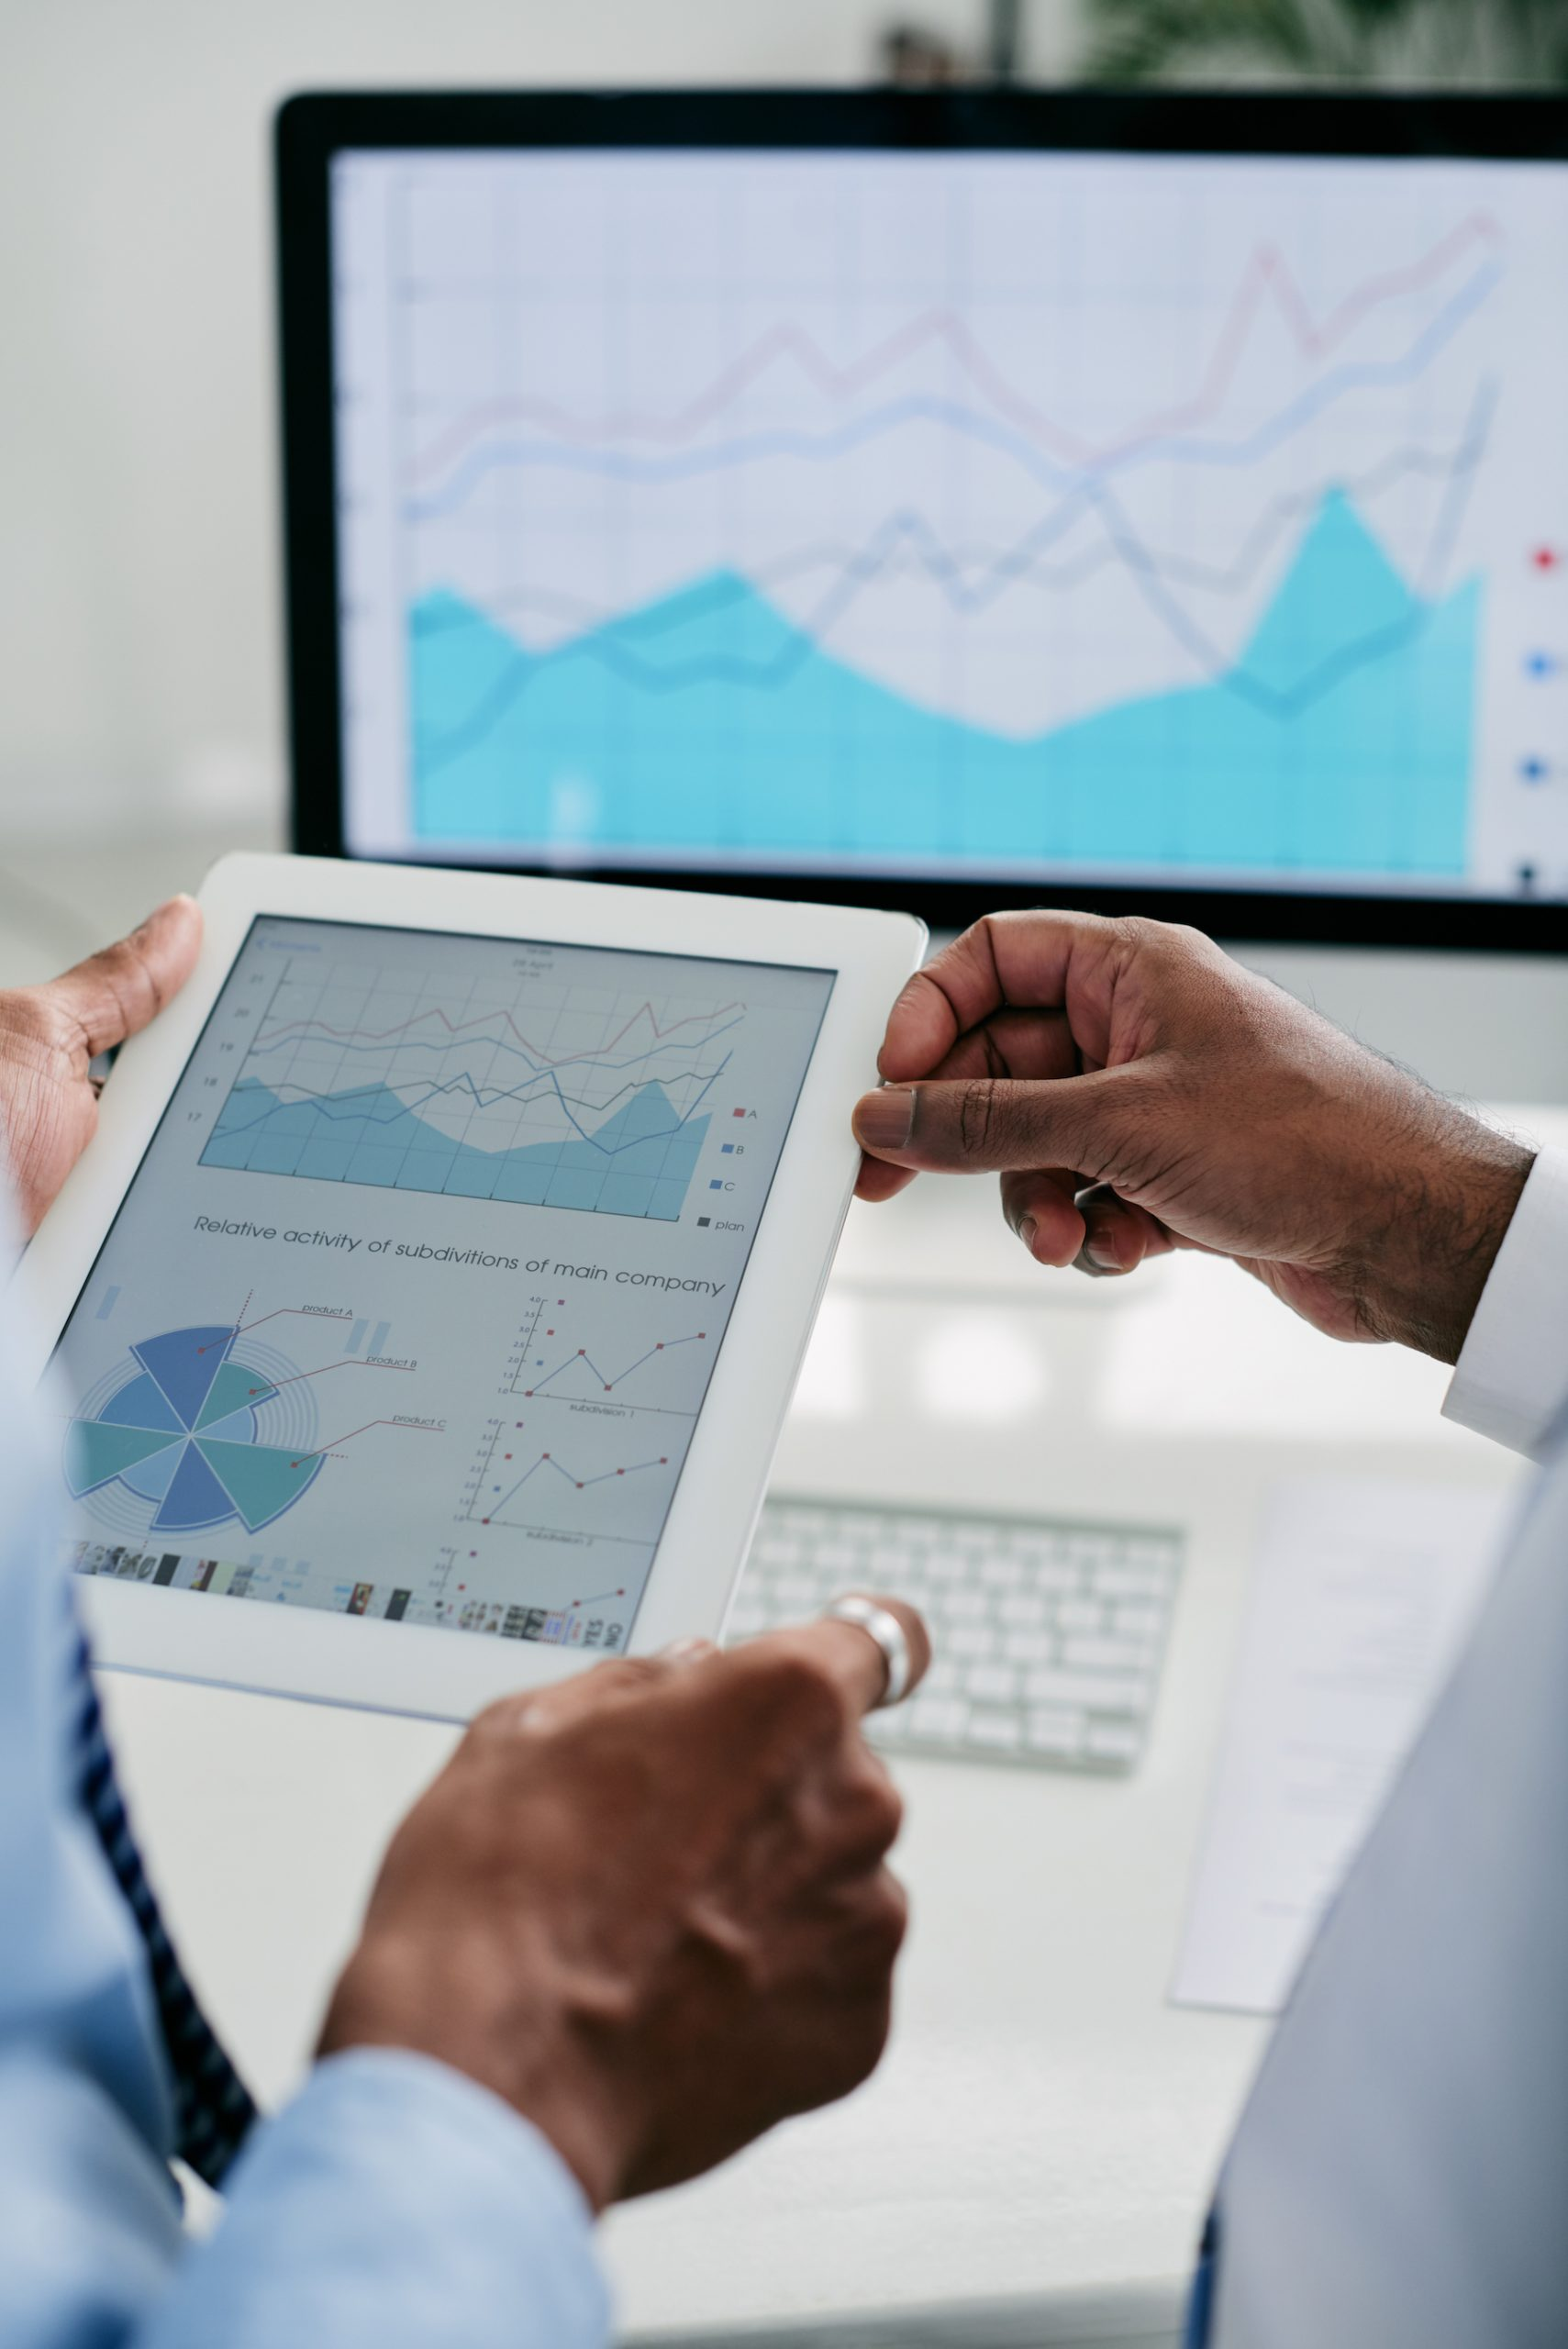 Document with financial diagram on tablet computer in hands of business executives